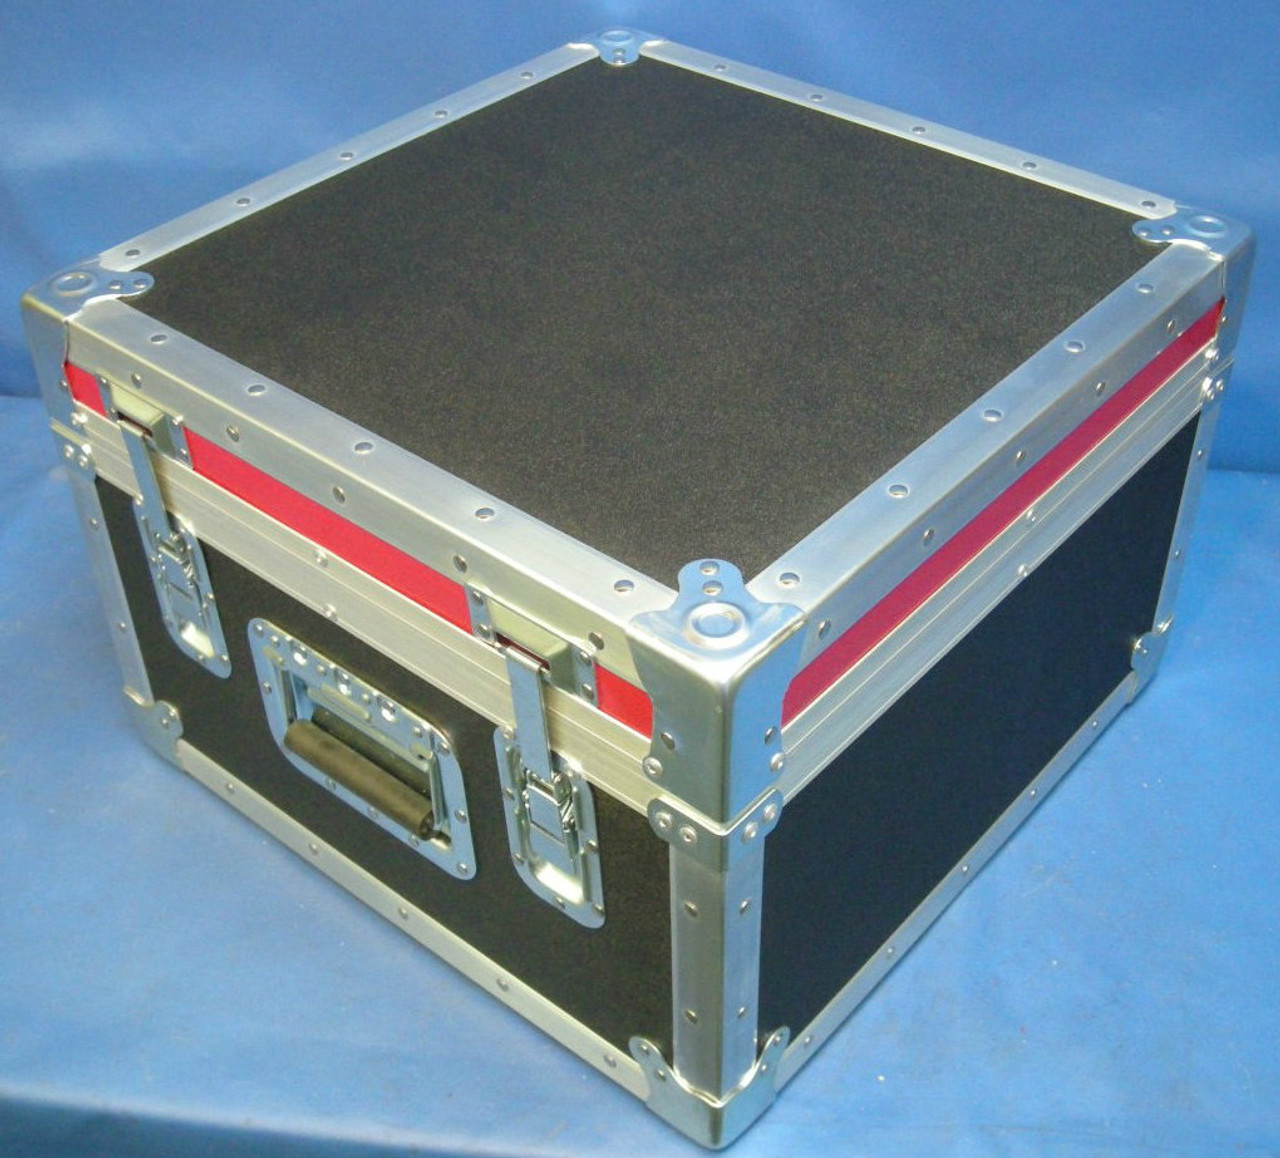 Arri Master Prime Lens (4 Position) Custom ATA Shipping Case - Exterior View Side/Top